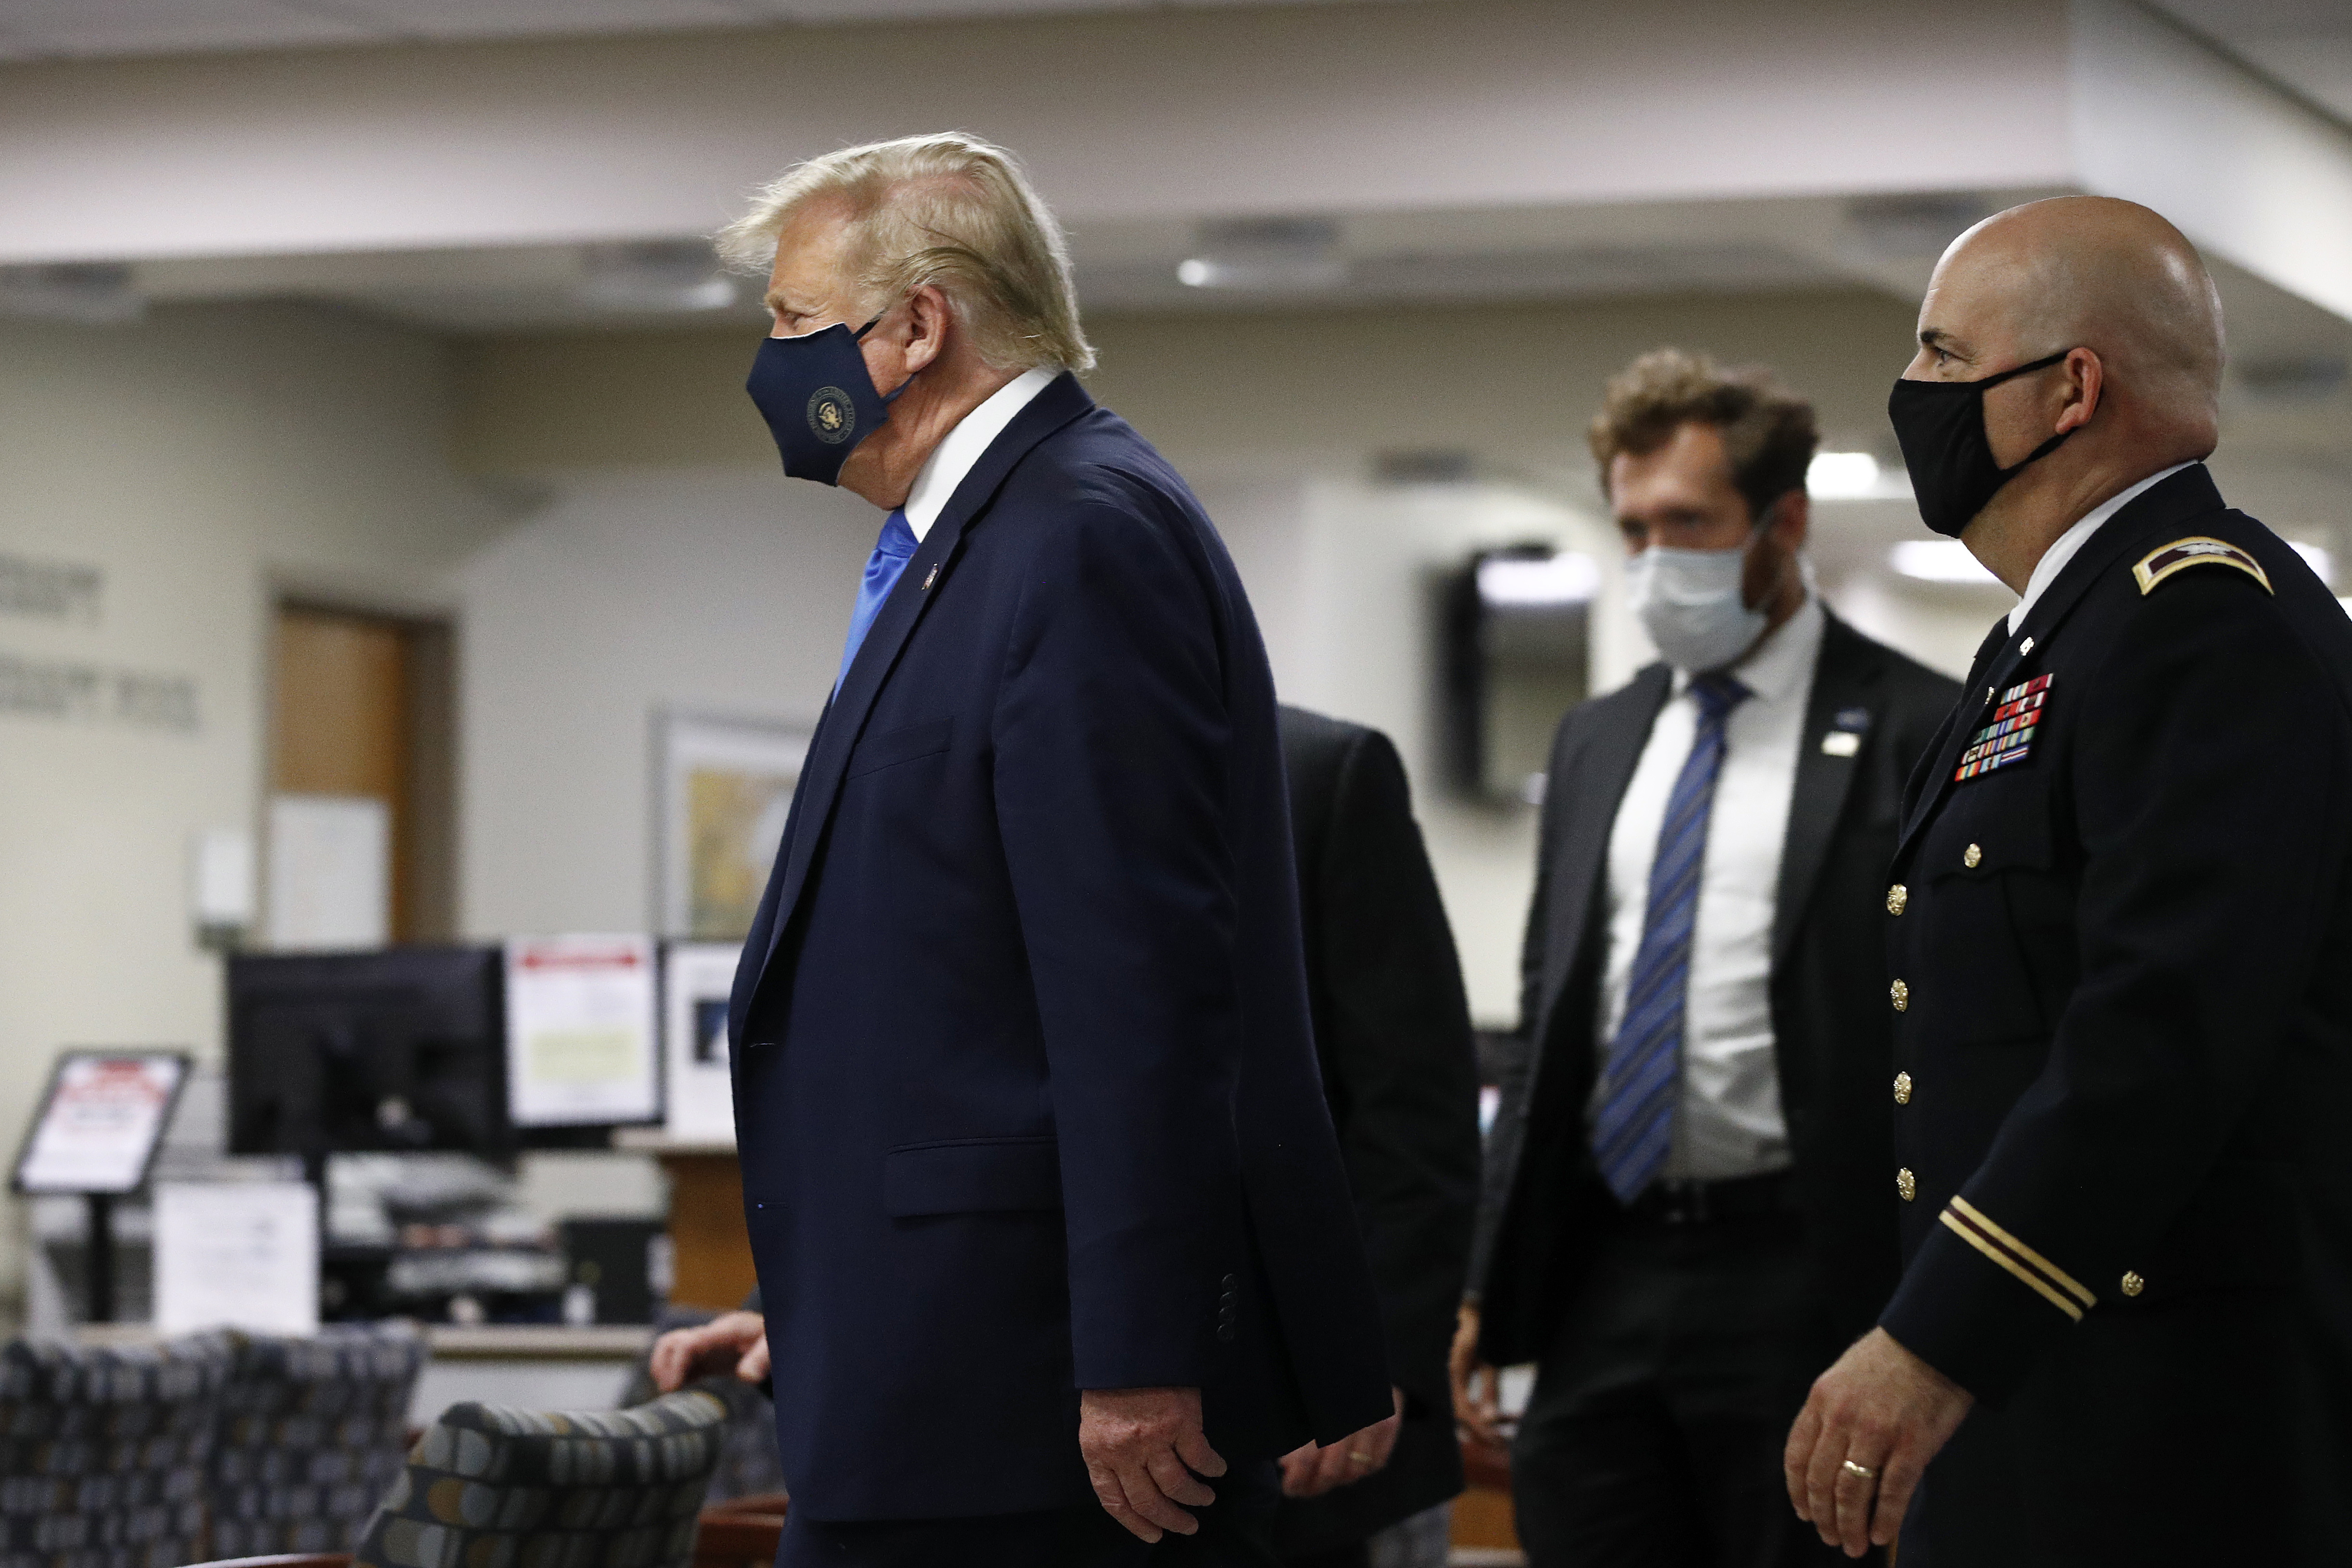 President Donald Trump wears a face mask as he walks down a hallway during a visit to Walter Reed National Military Medical Center in Bethesda, Md., on July 11, 2020.